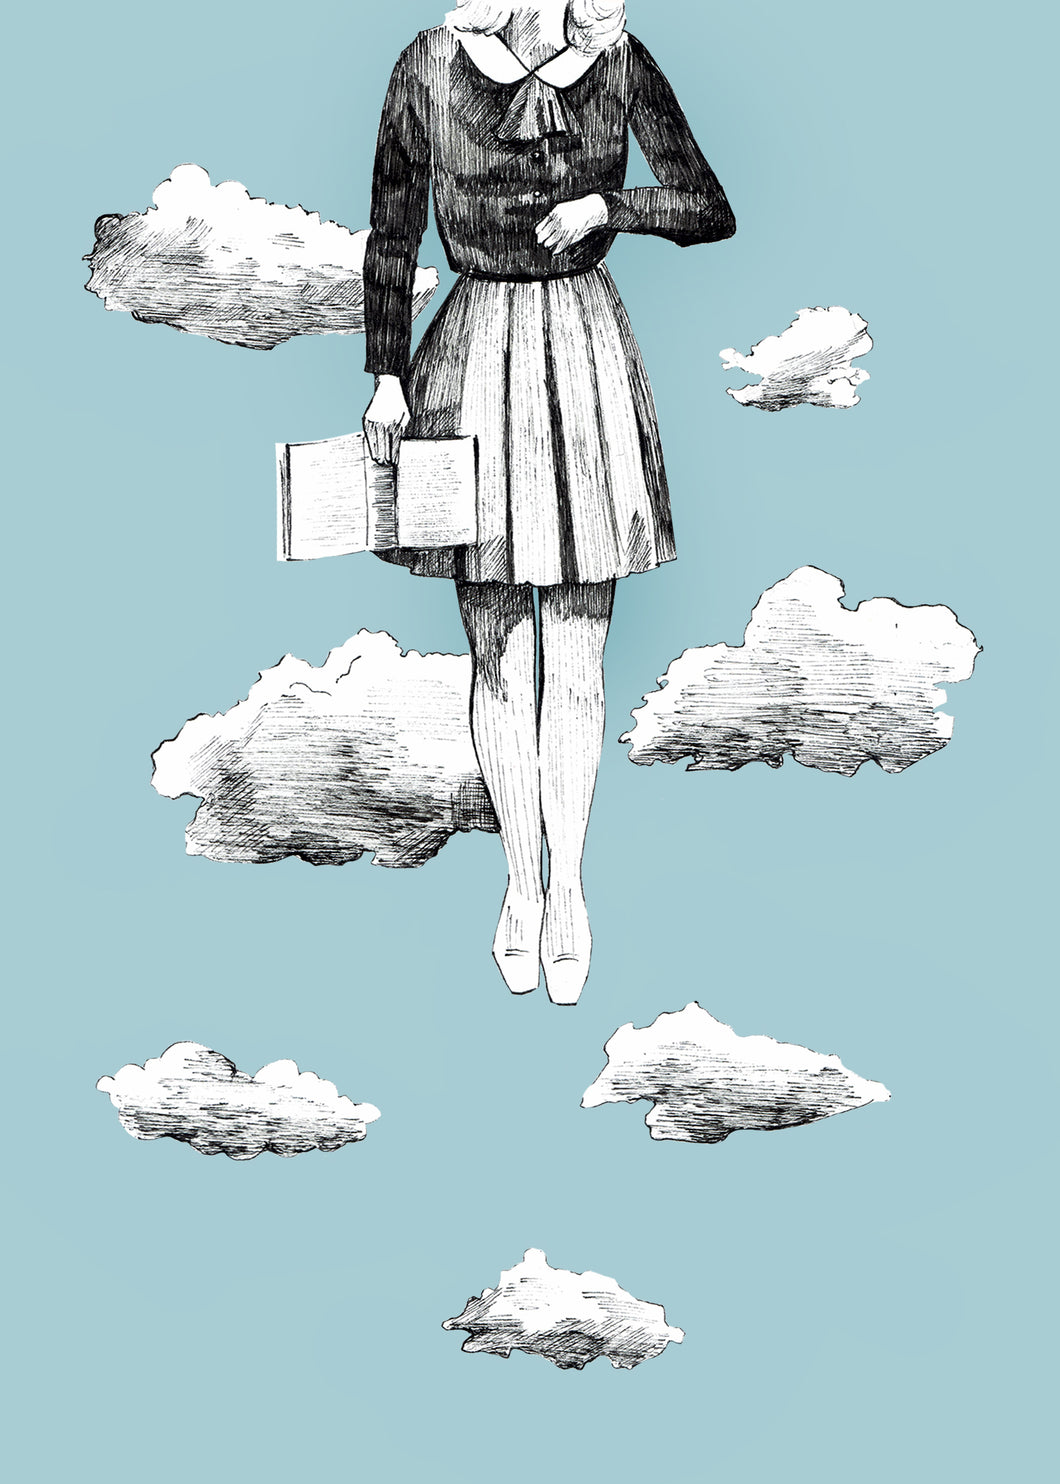 Clouds - About Face Illustration